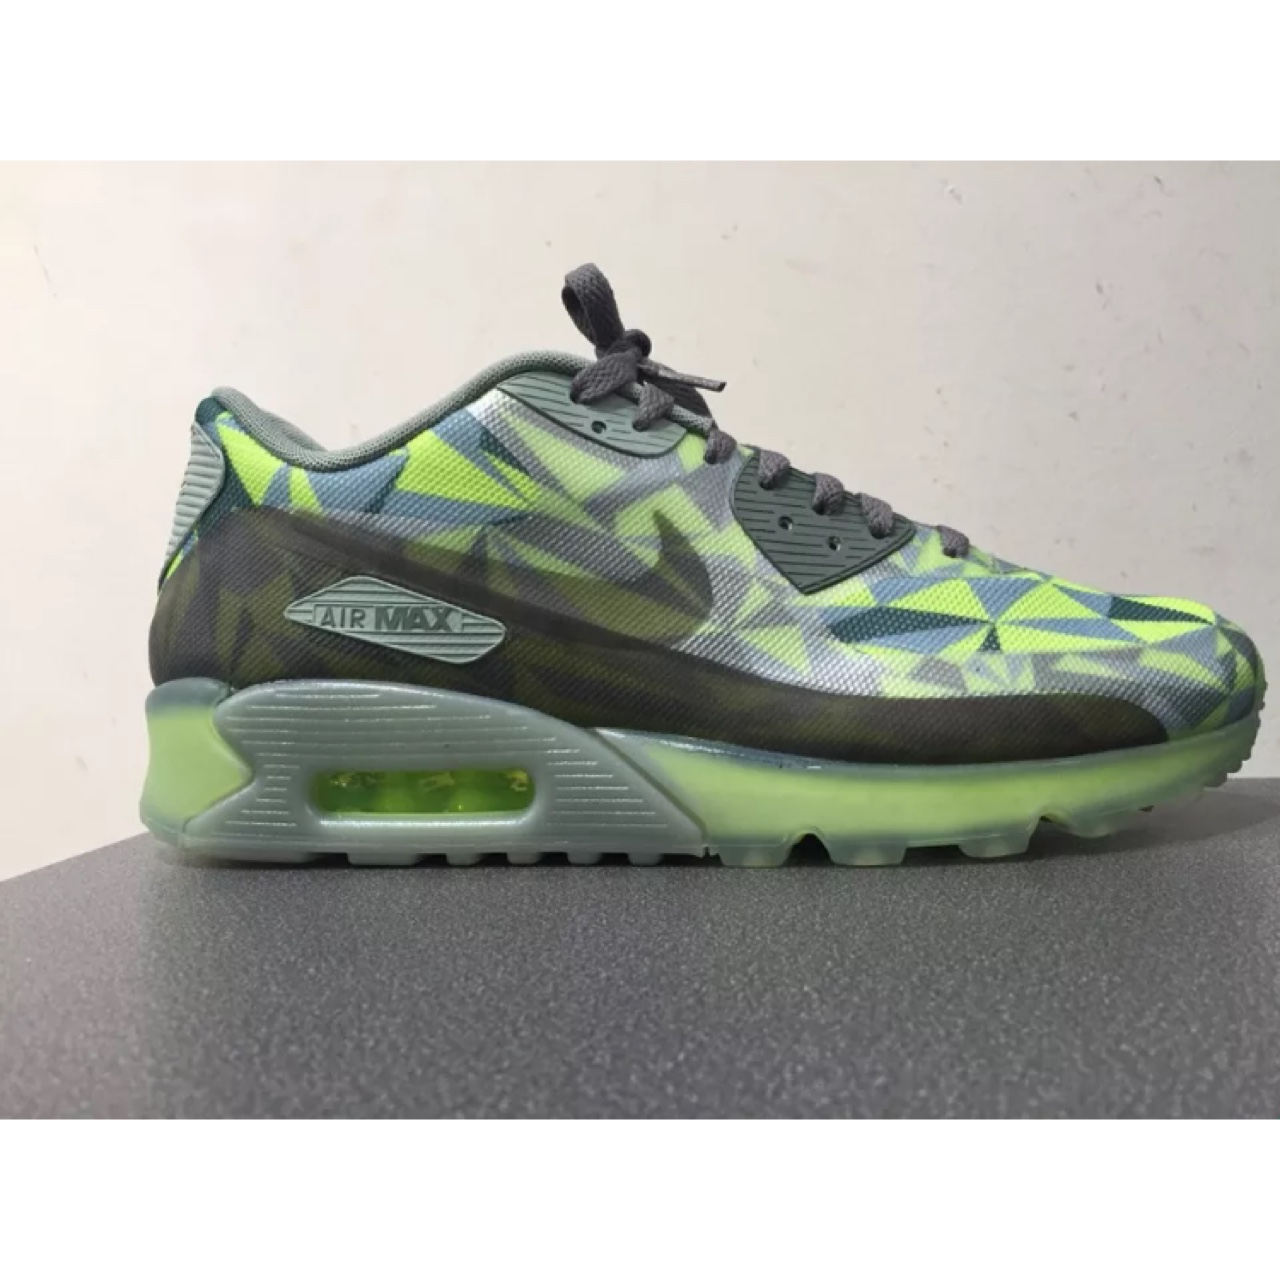 Air Max 90 'Ice Pack'